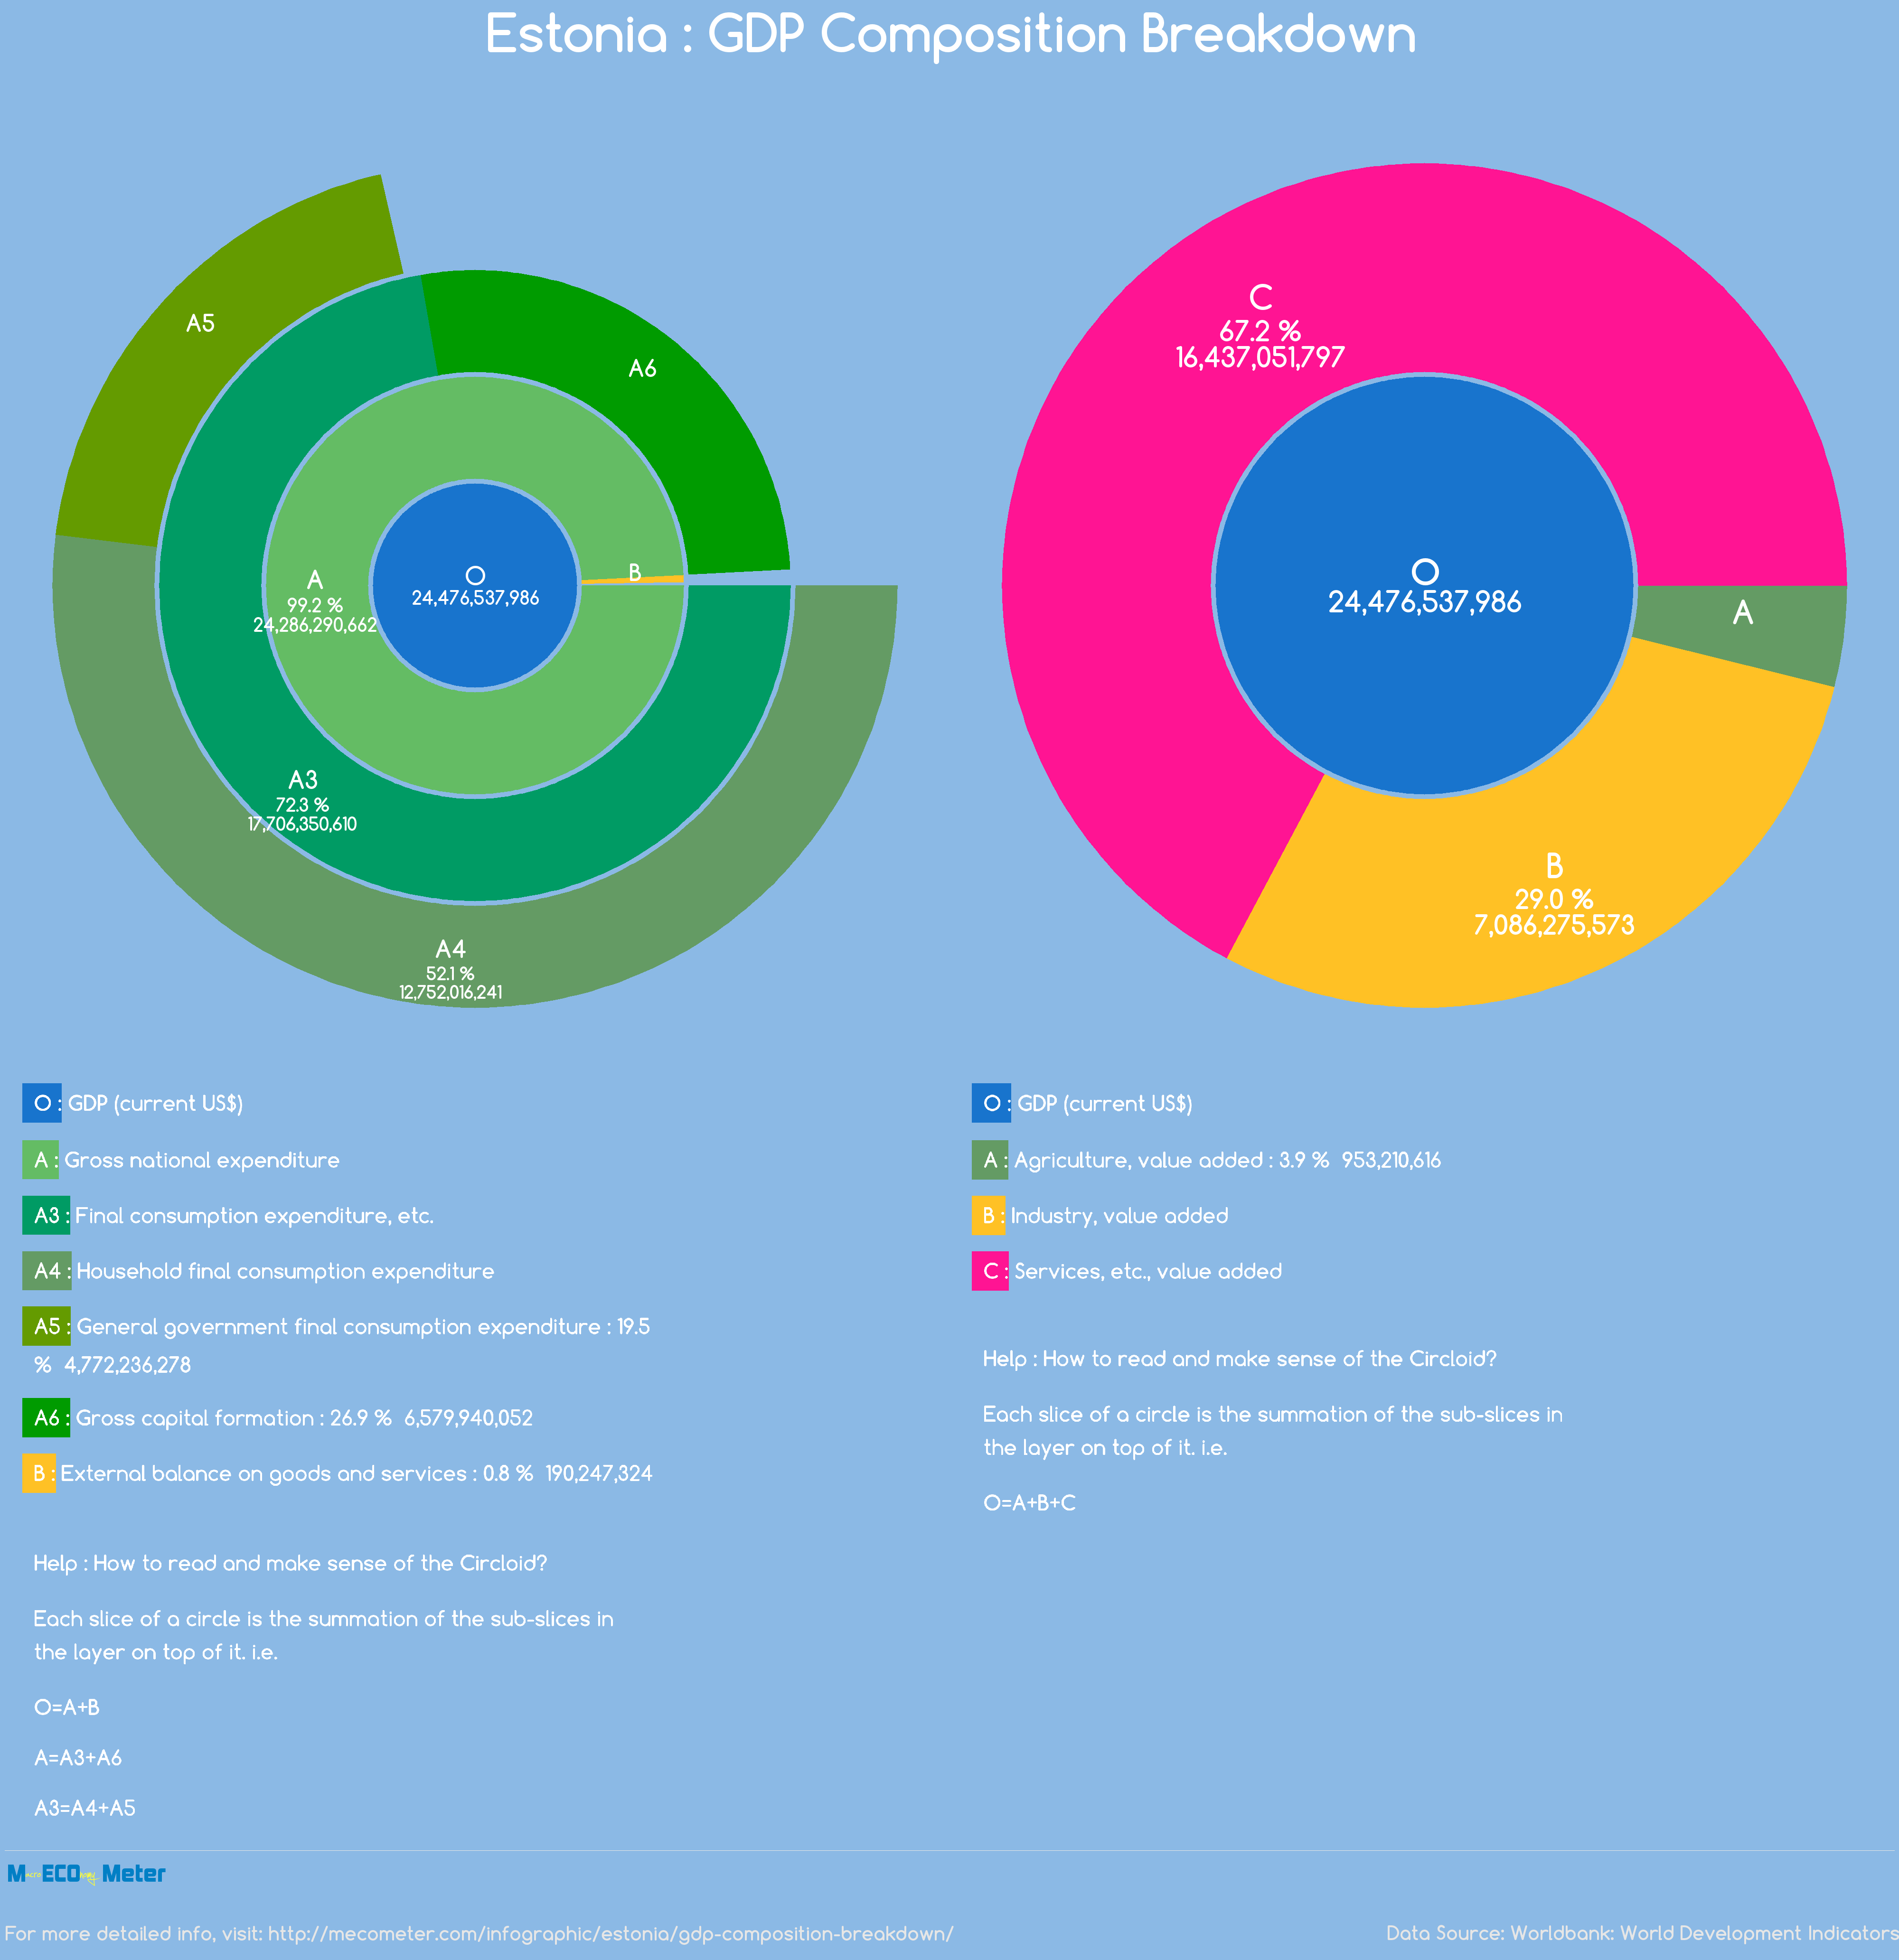 Estonia : GDP Composition Breakdown